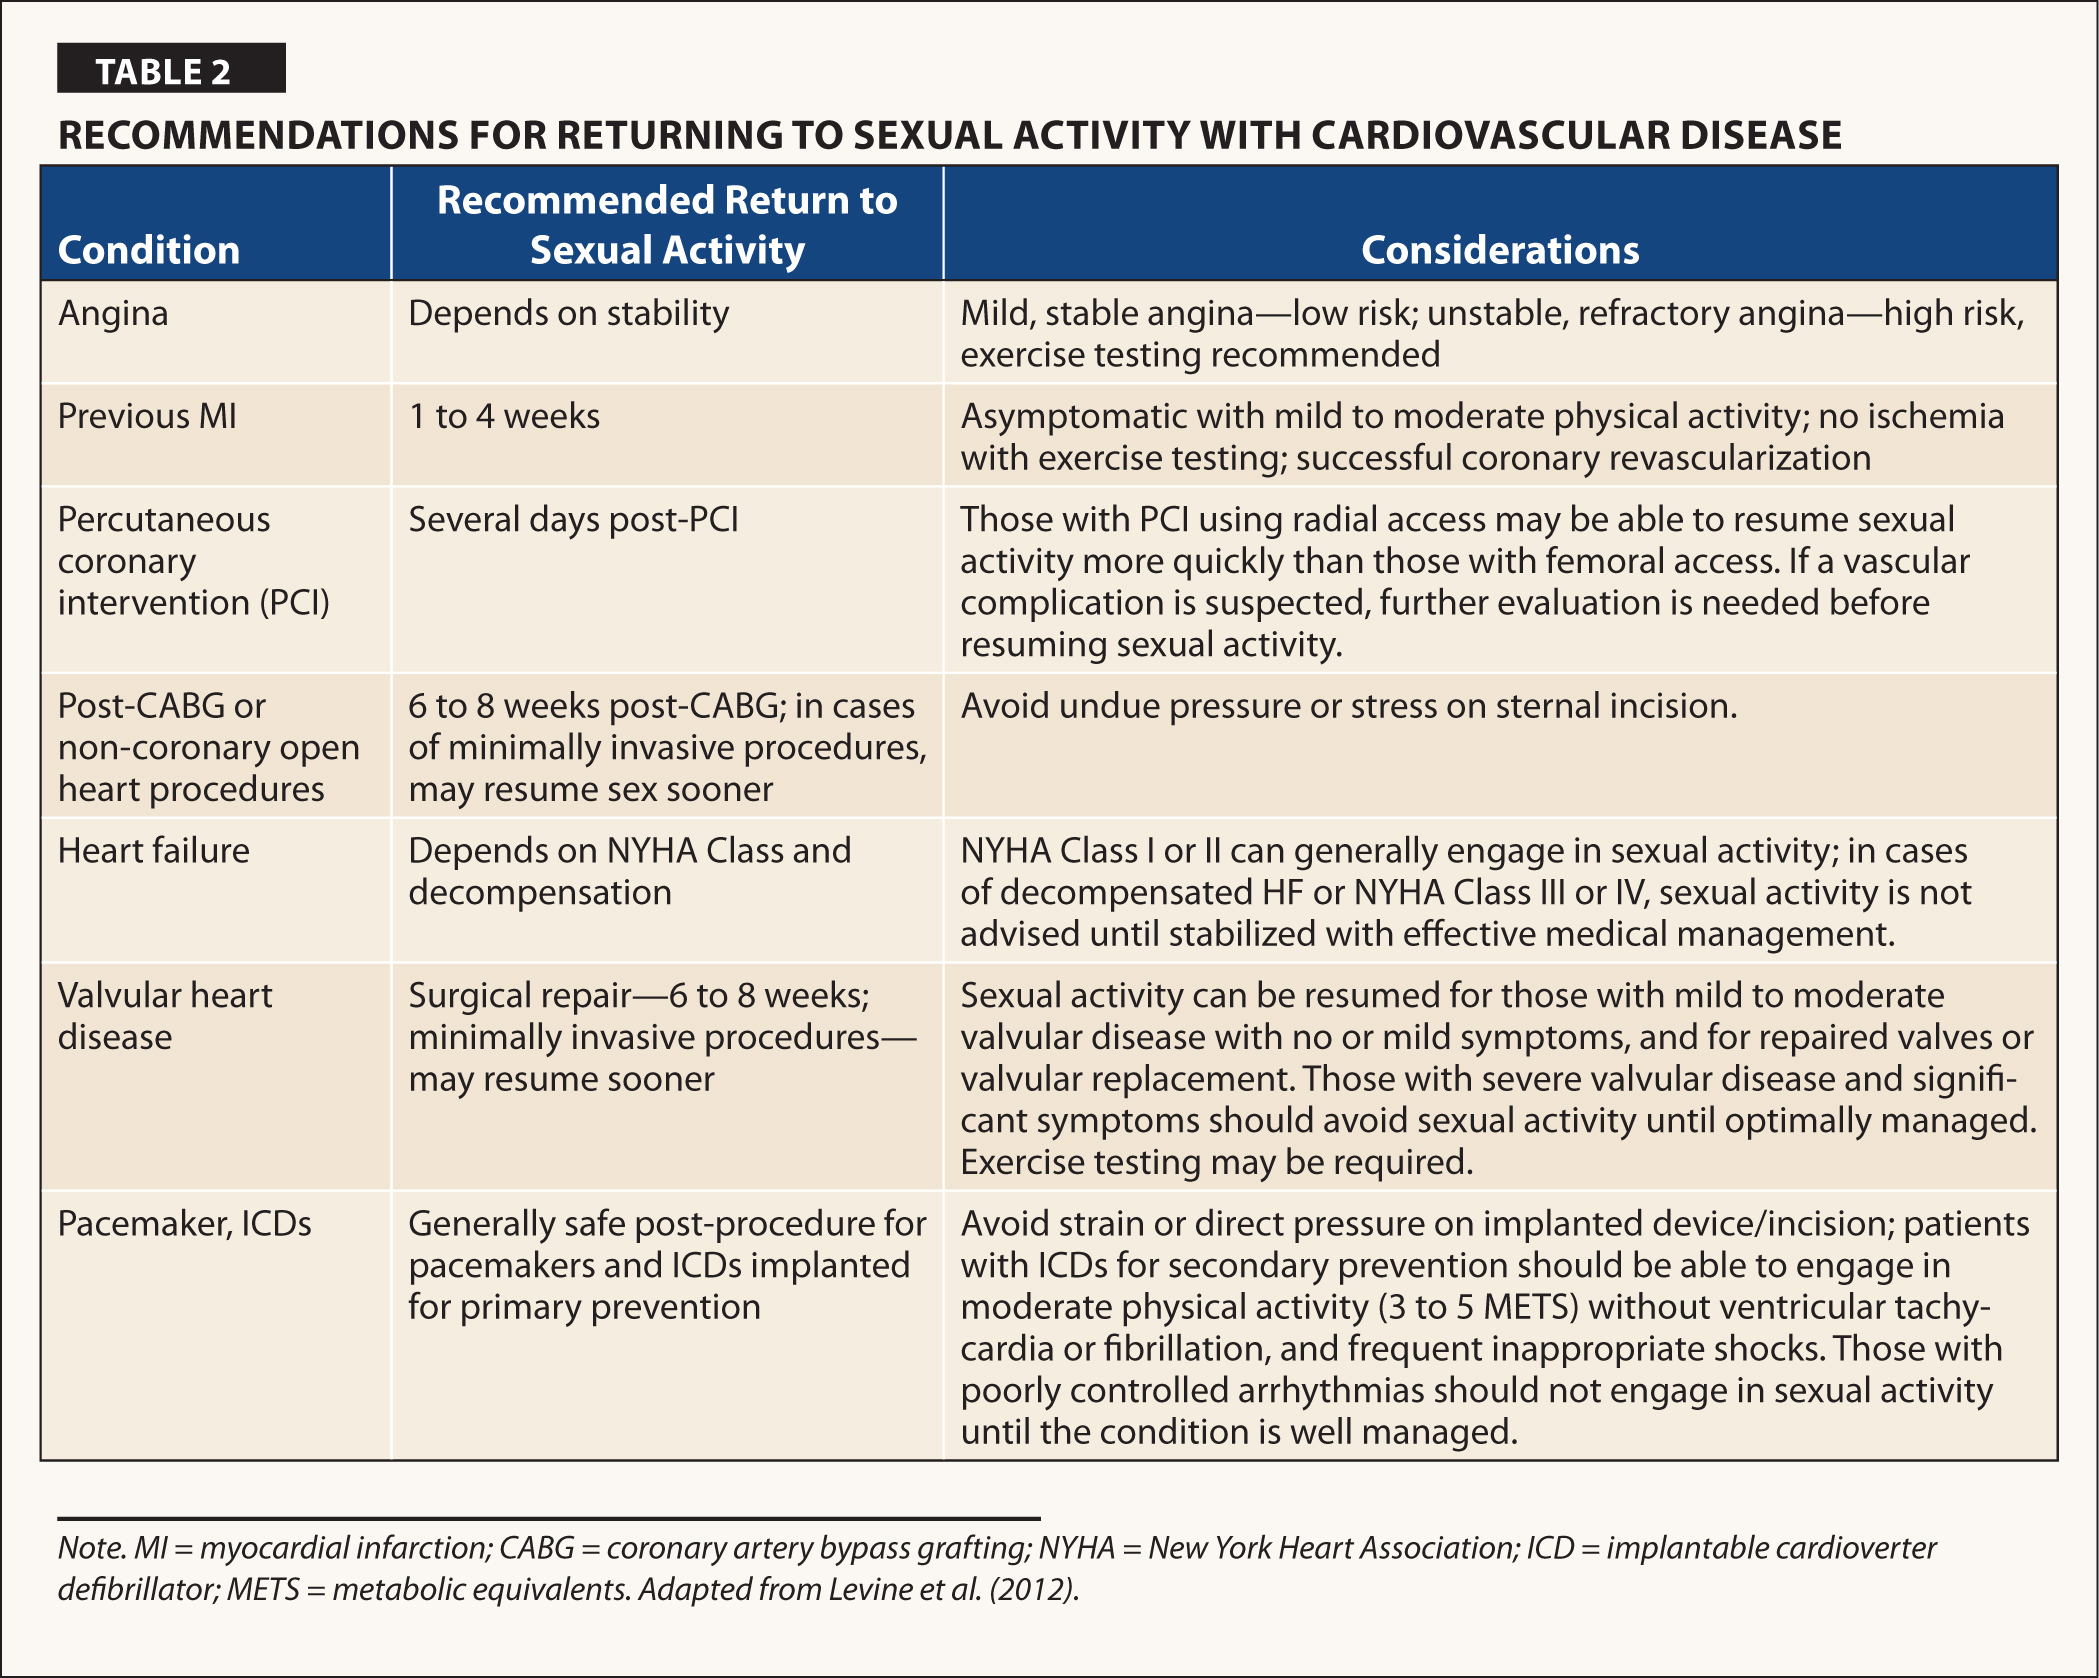 Recommendations for Returning to Sexual Activity With Cardiovascular Disease